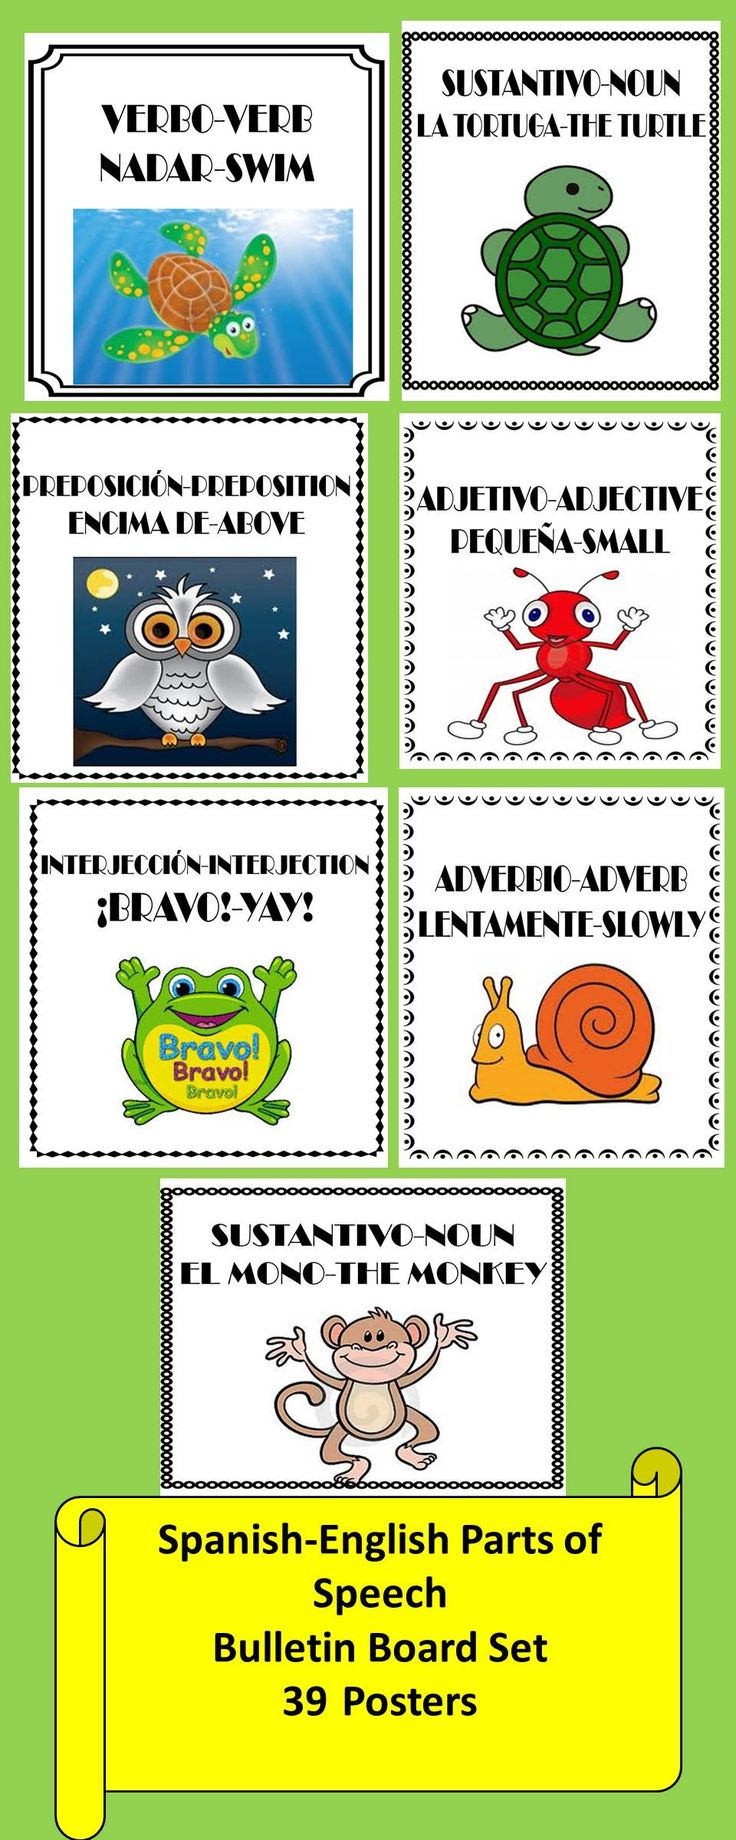 Spanish-English Parts of Speech Bulletin Board Set/Word Wall 39 Posters with cute animal theme!